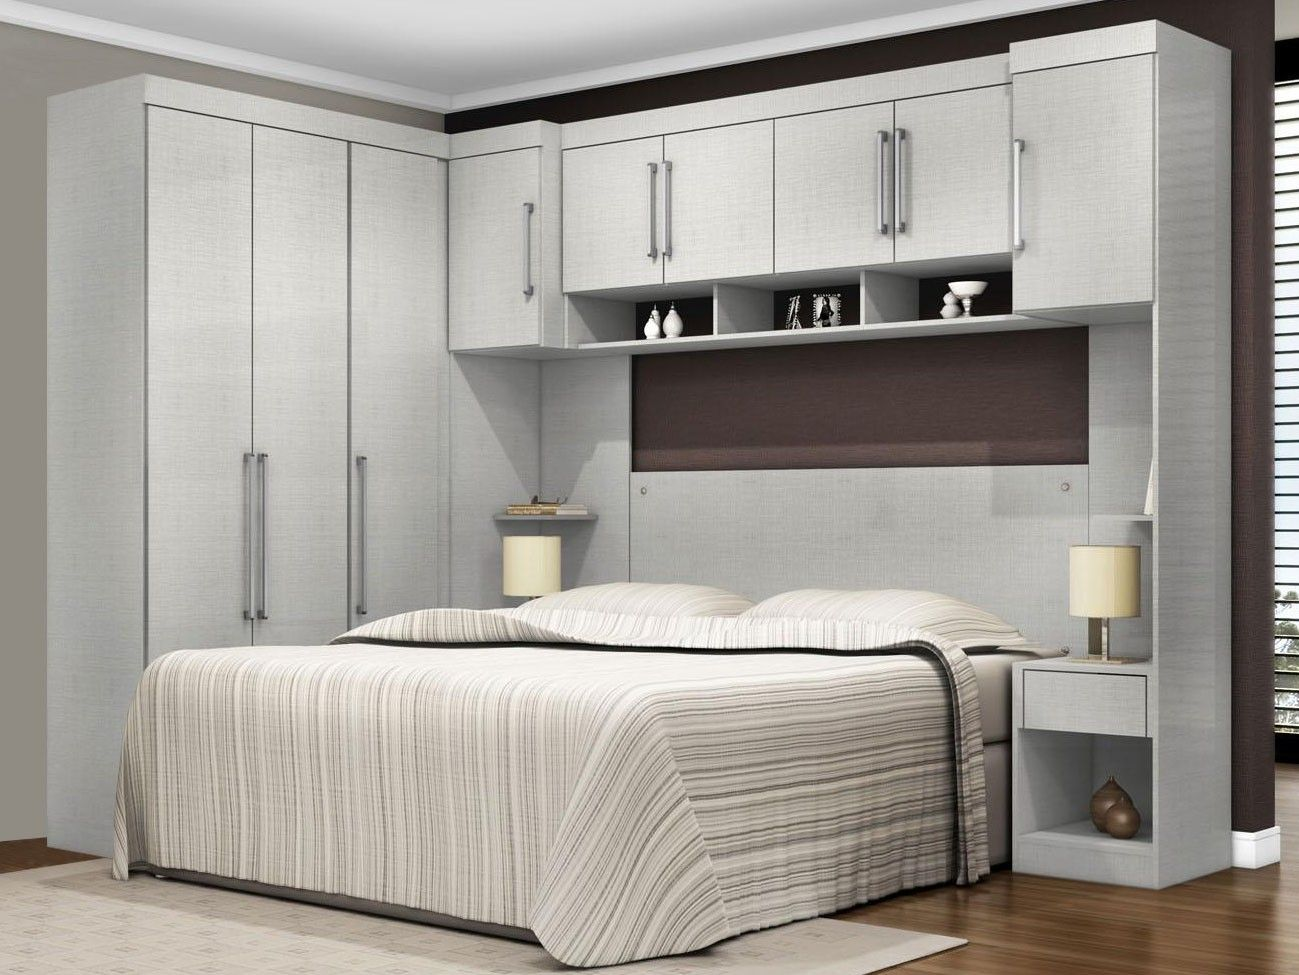 Modern designed bedroom with nicely organized storage systems